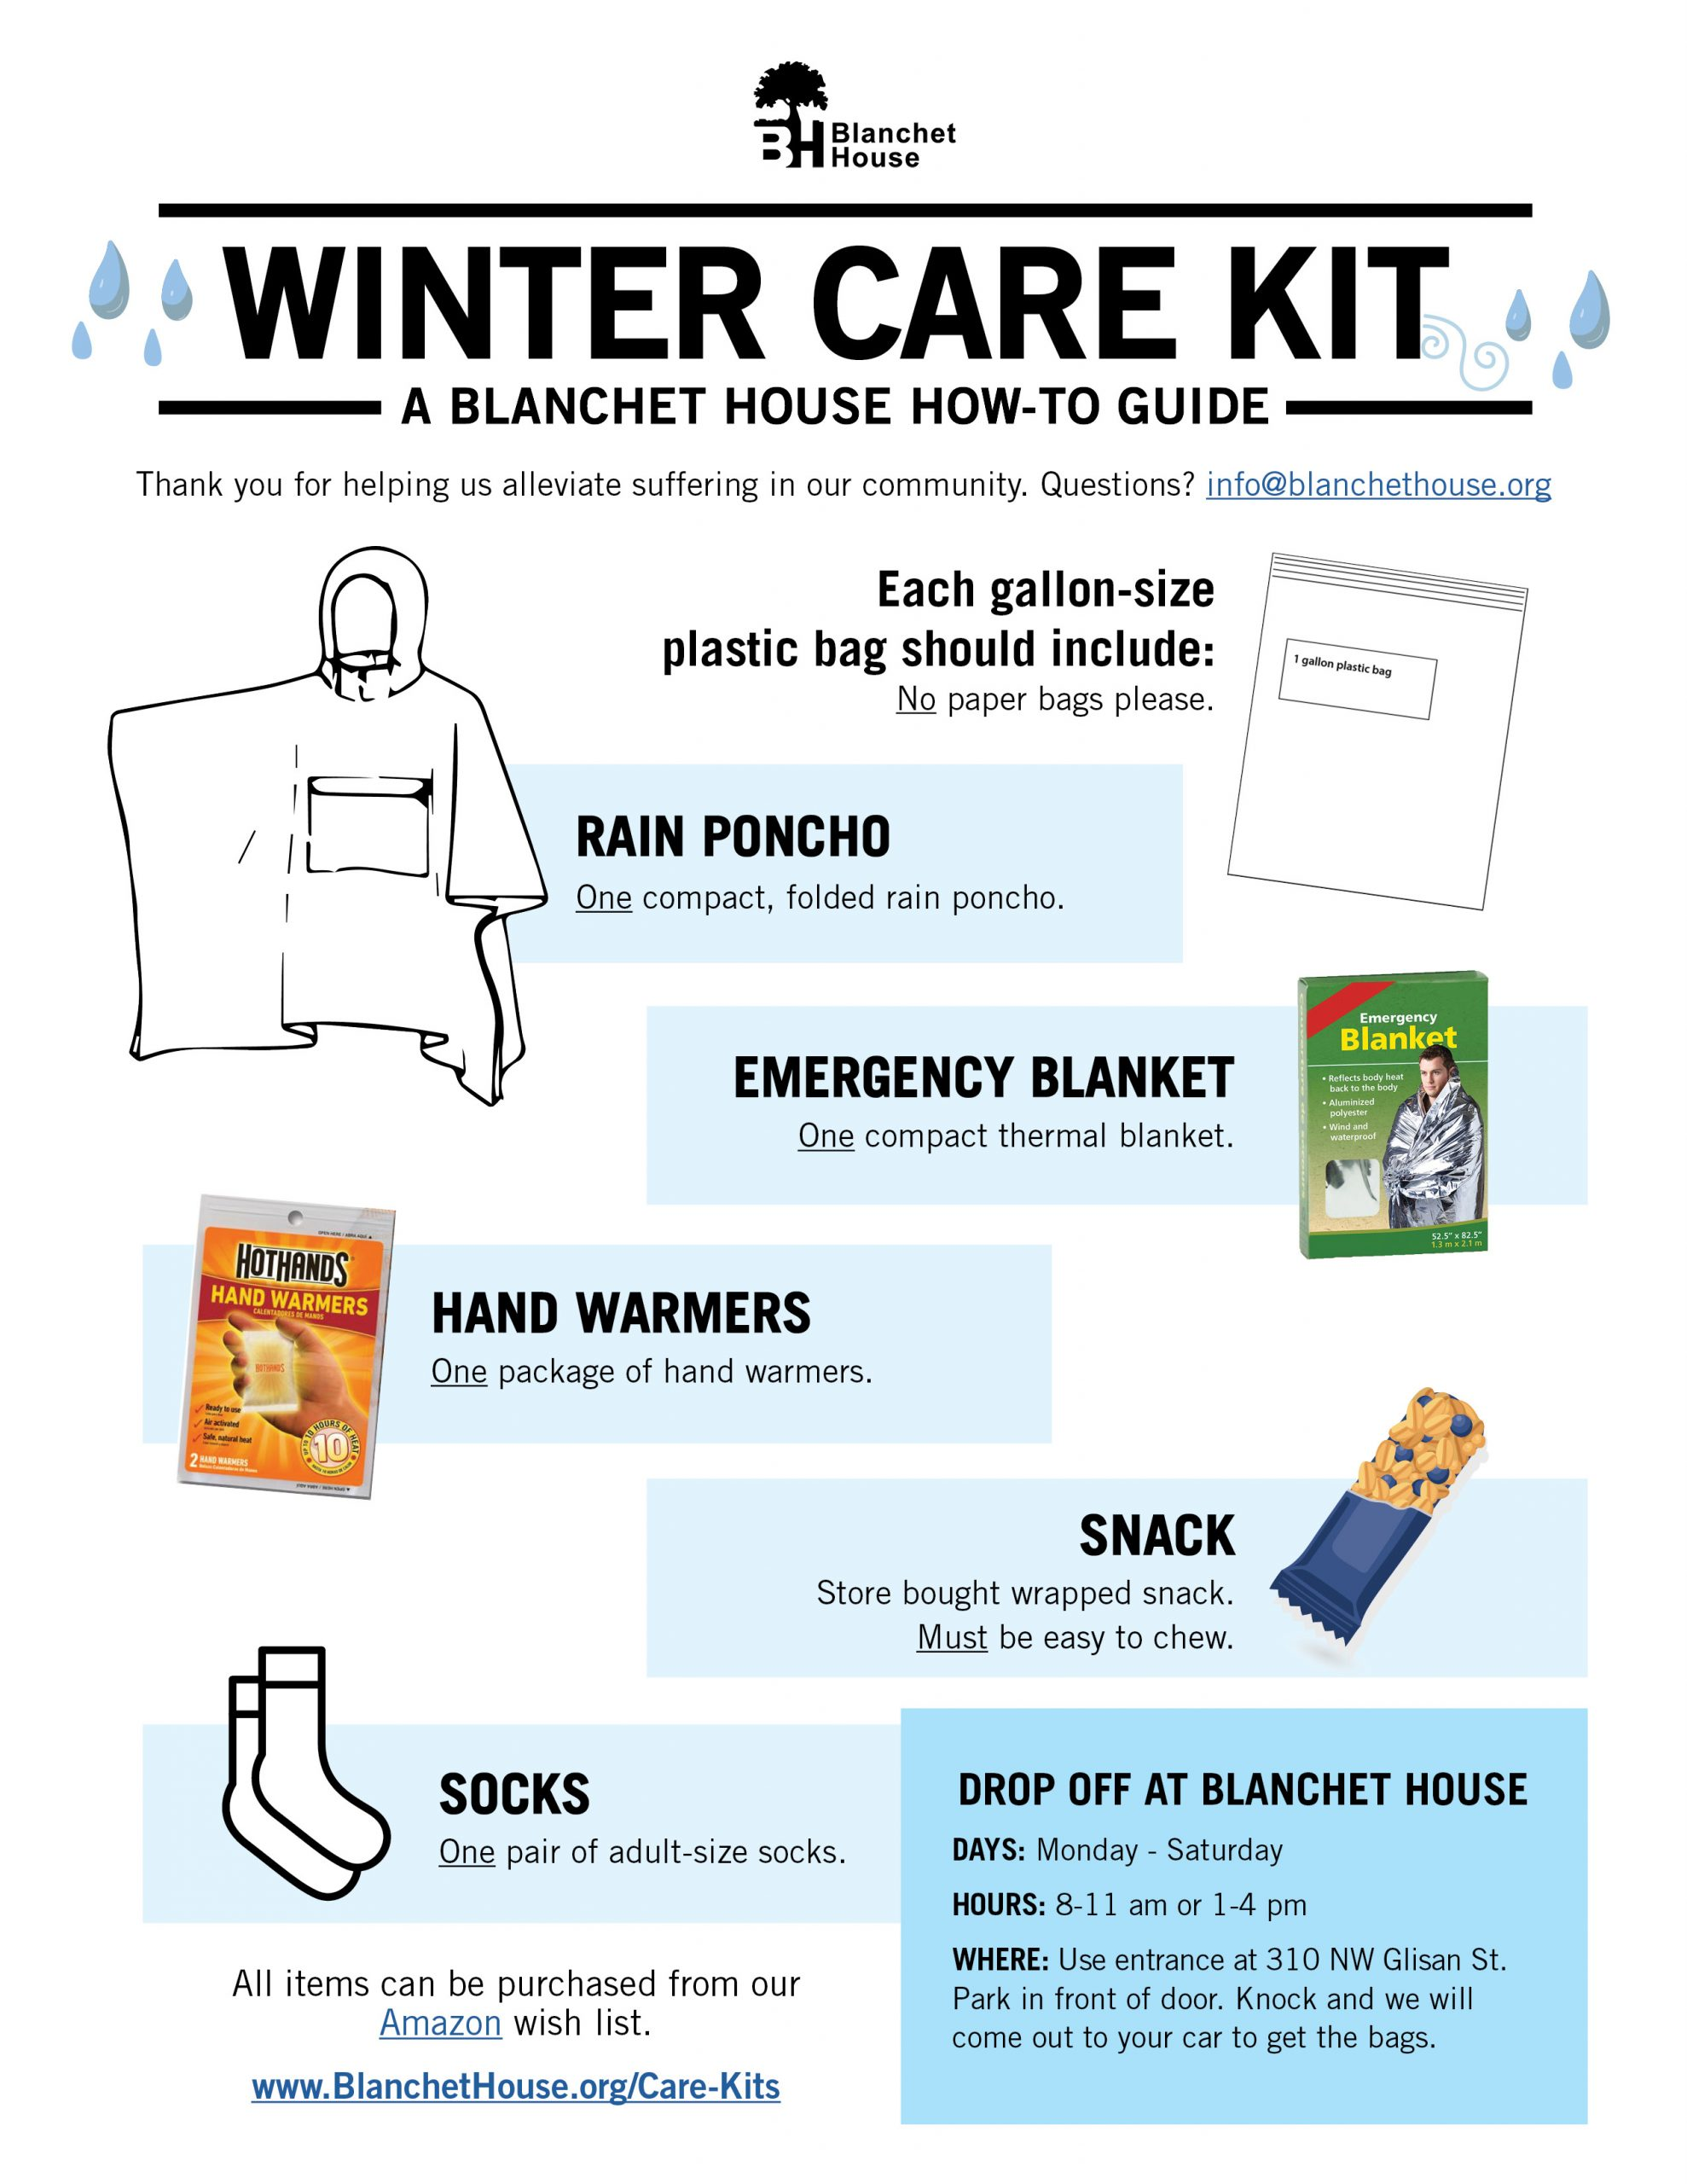 how to make a Winter care kit for homeless